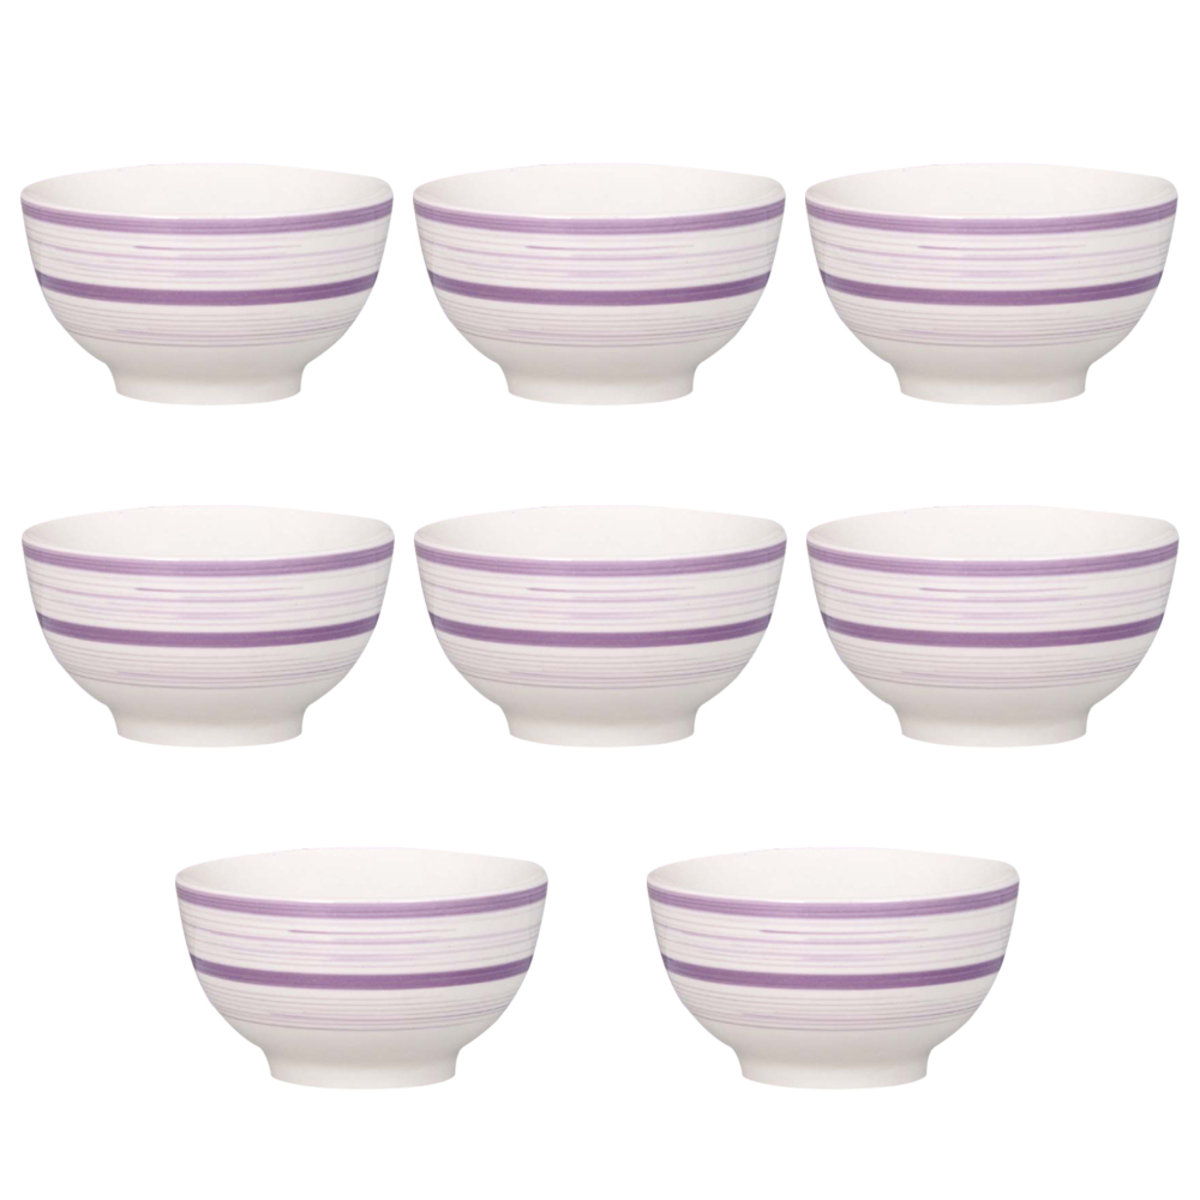 Bowl Tazon Set Hogar Mesa Ceramica 7 In 8 Pz Crown Baccara